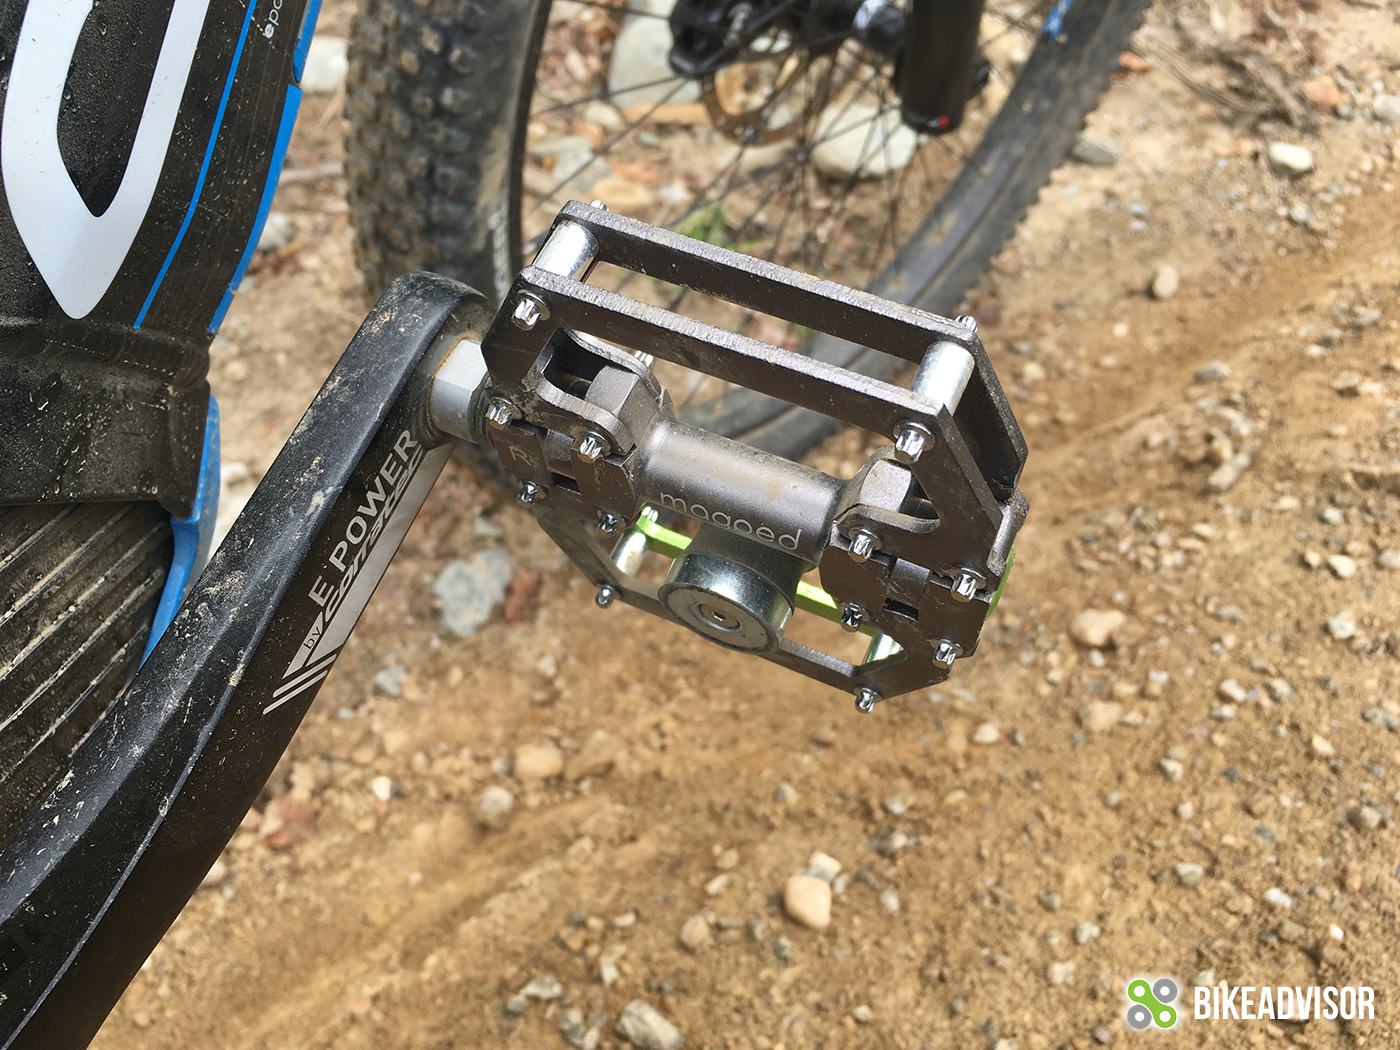 This is the default position of the pedal considering the side with a magnet is heavier.